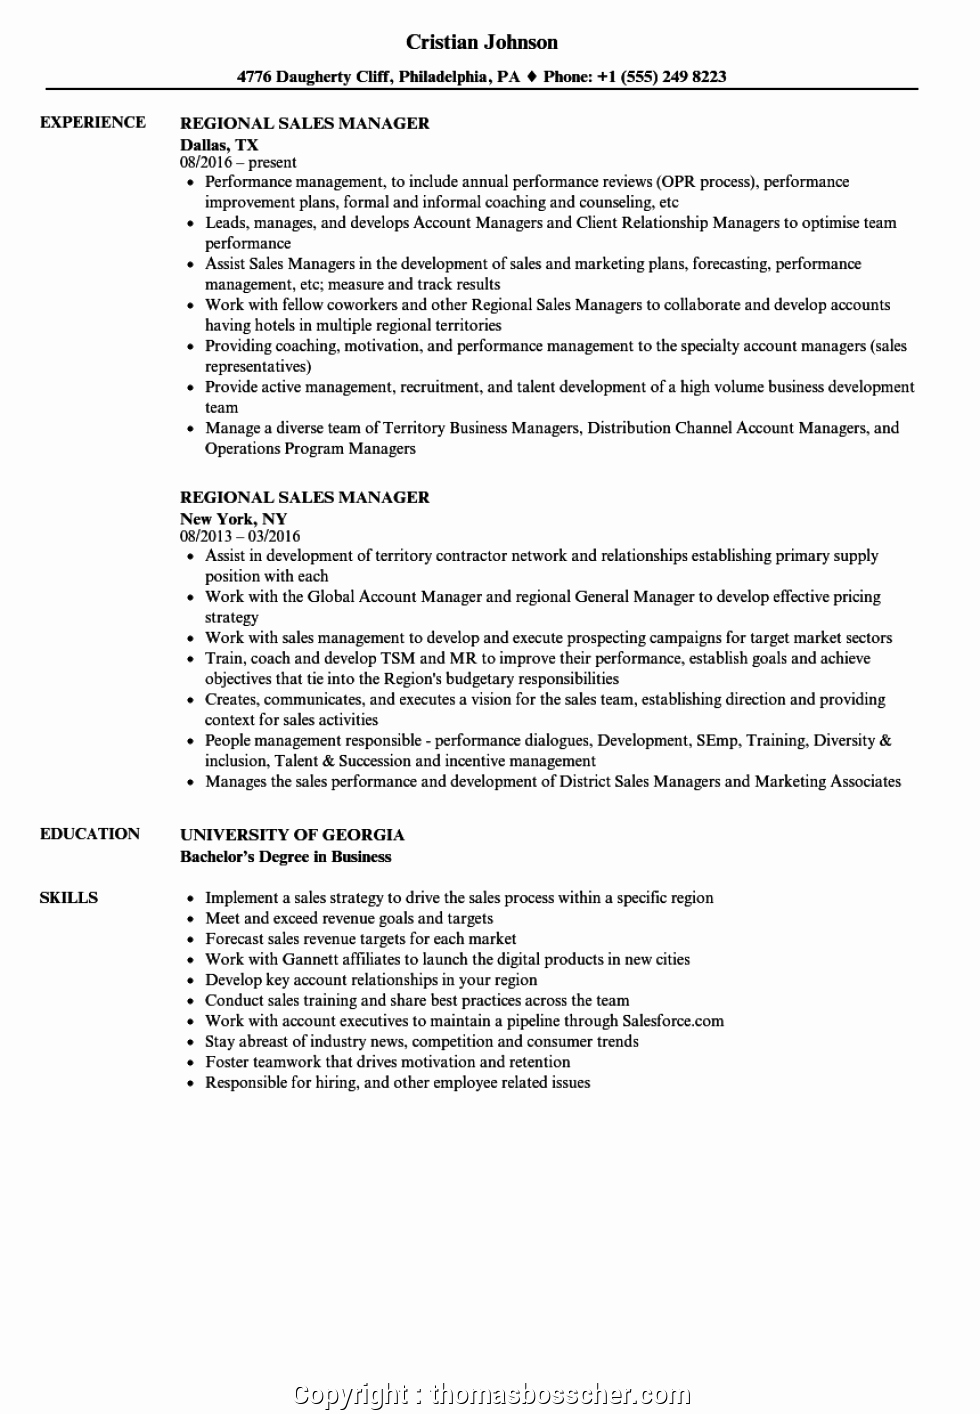 Newest Sample Resume for Sales Manager Position Sample